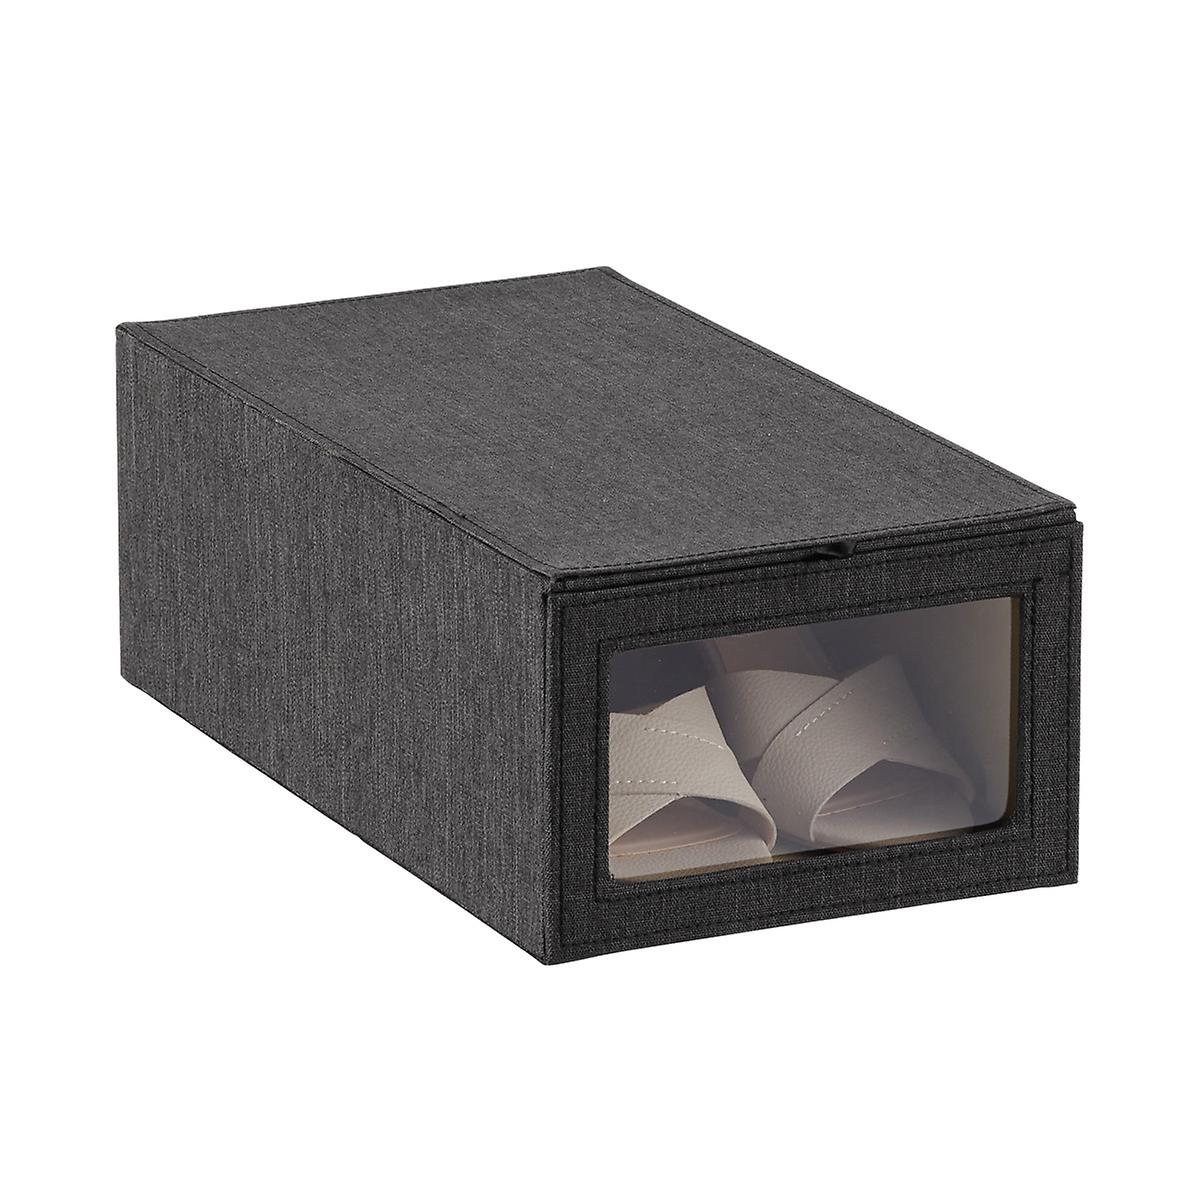 Black Cambridge Drop-Front Shoe Box